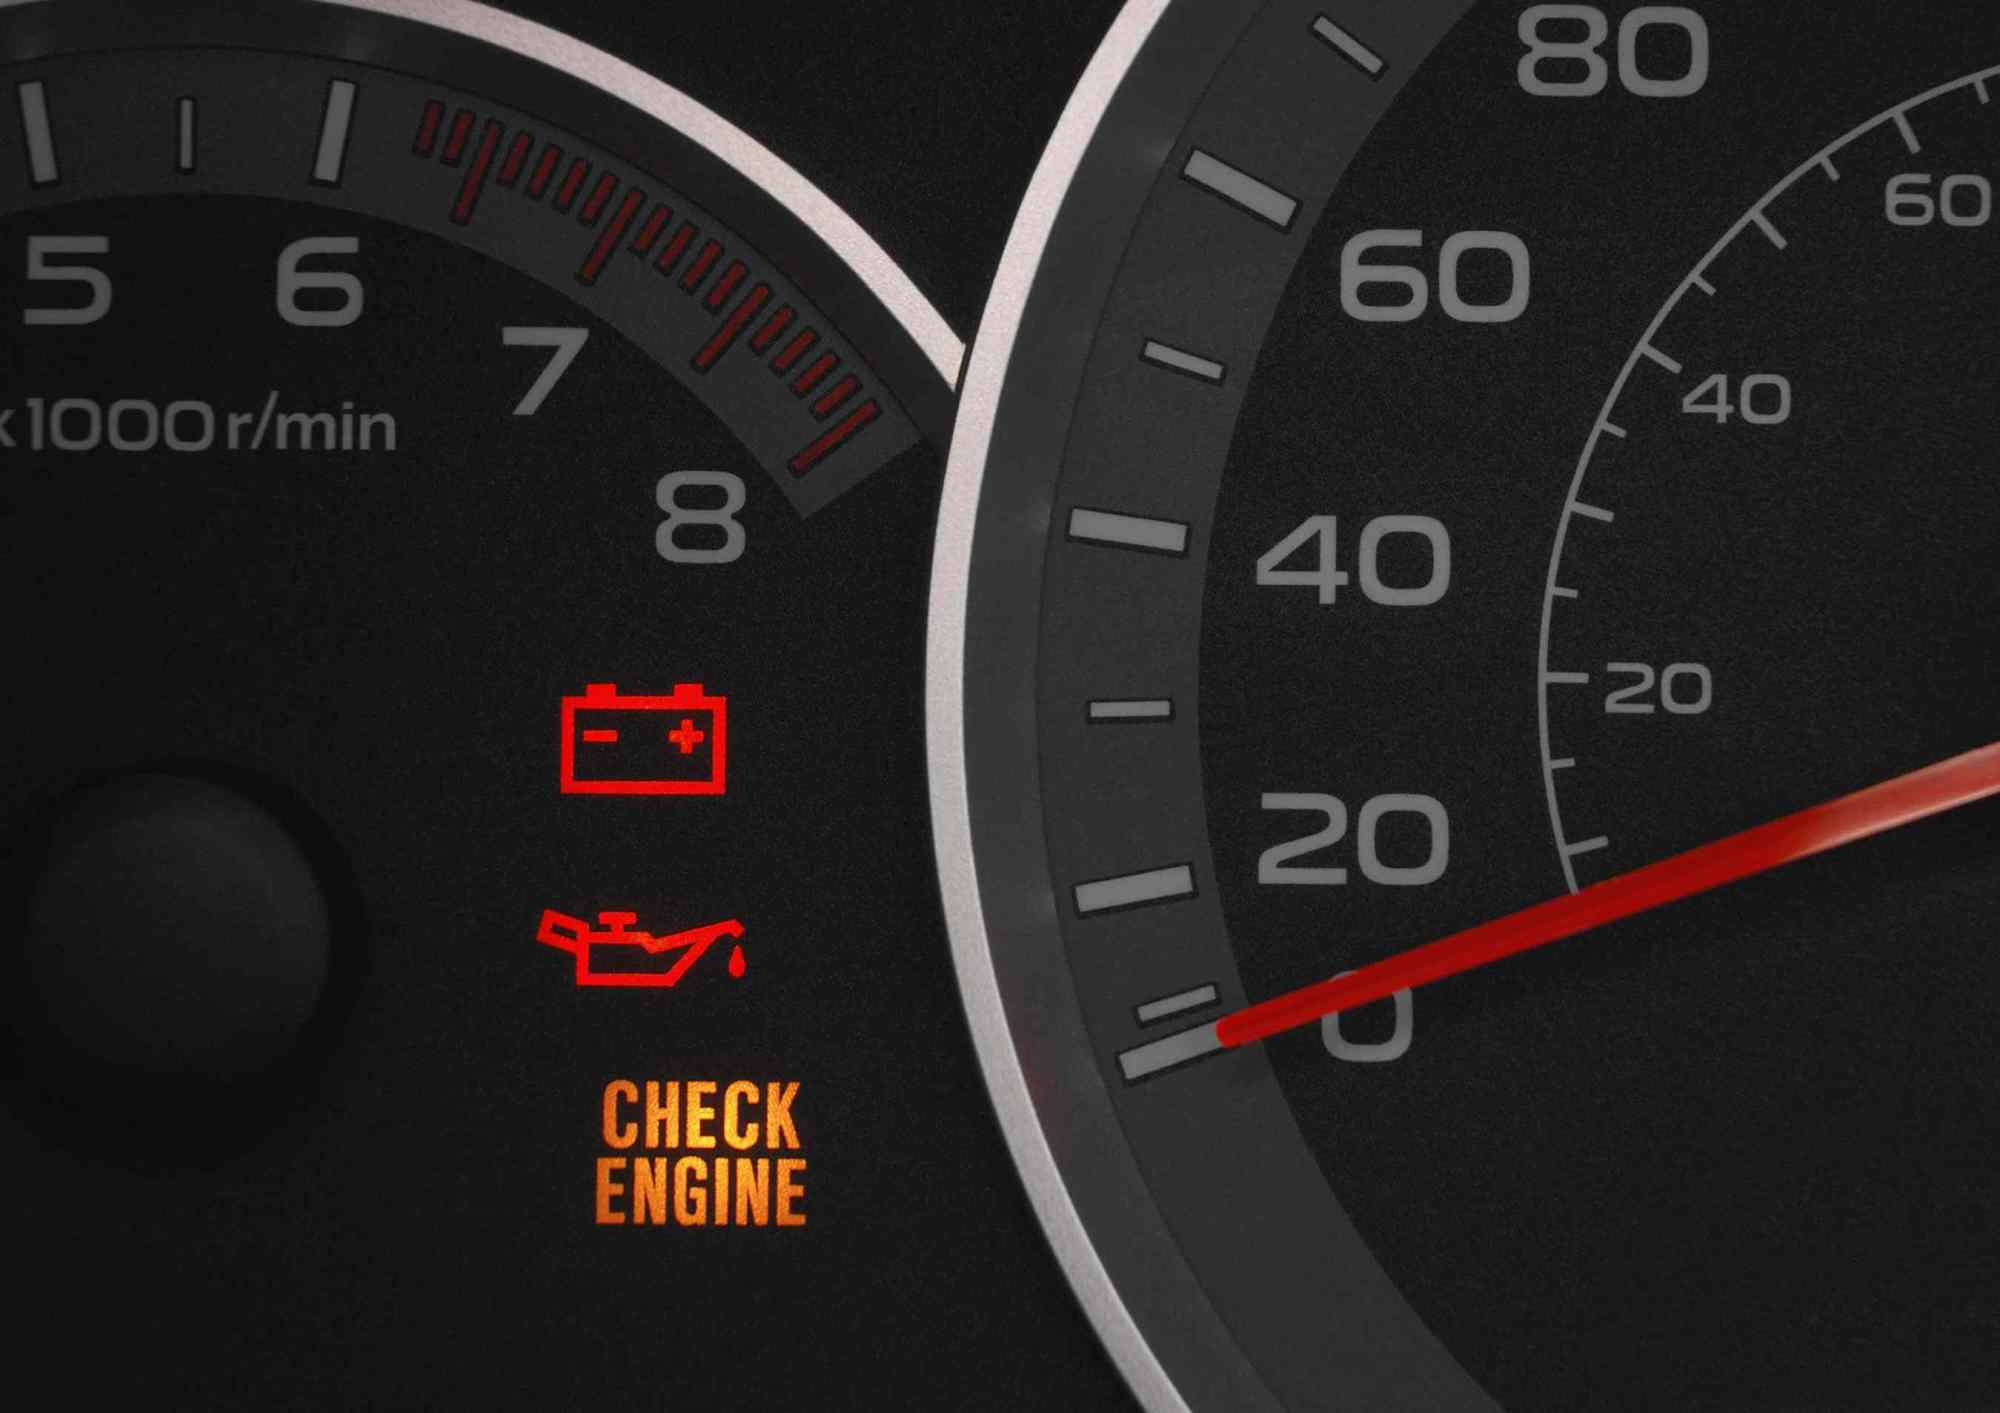 hight resolution of close up on a cluster with the check engine warning light on indicating a car failure